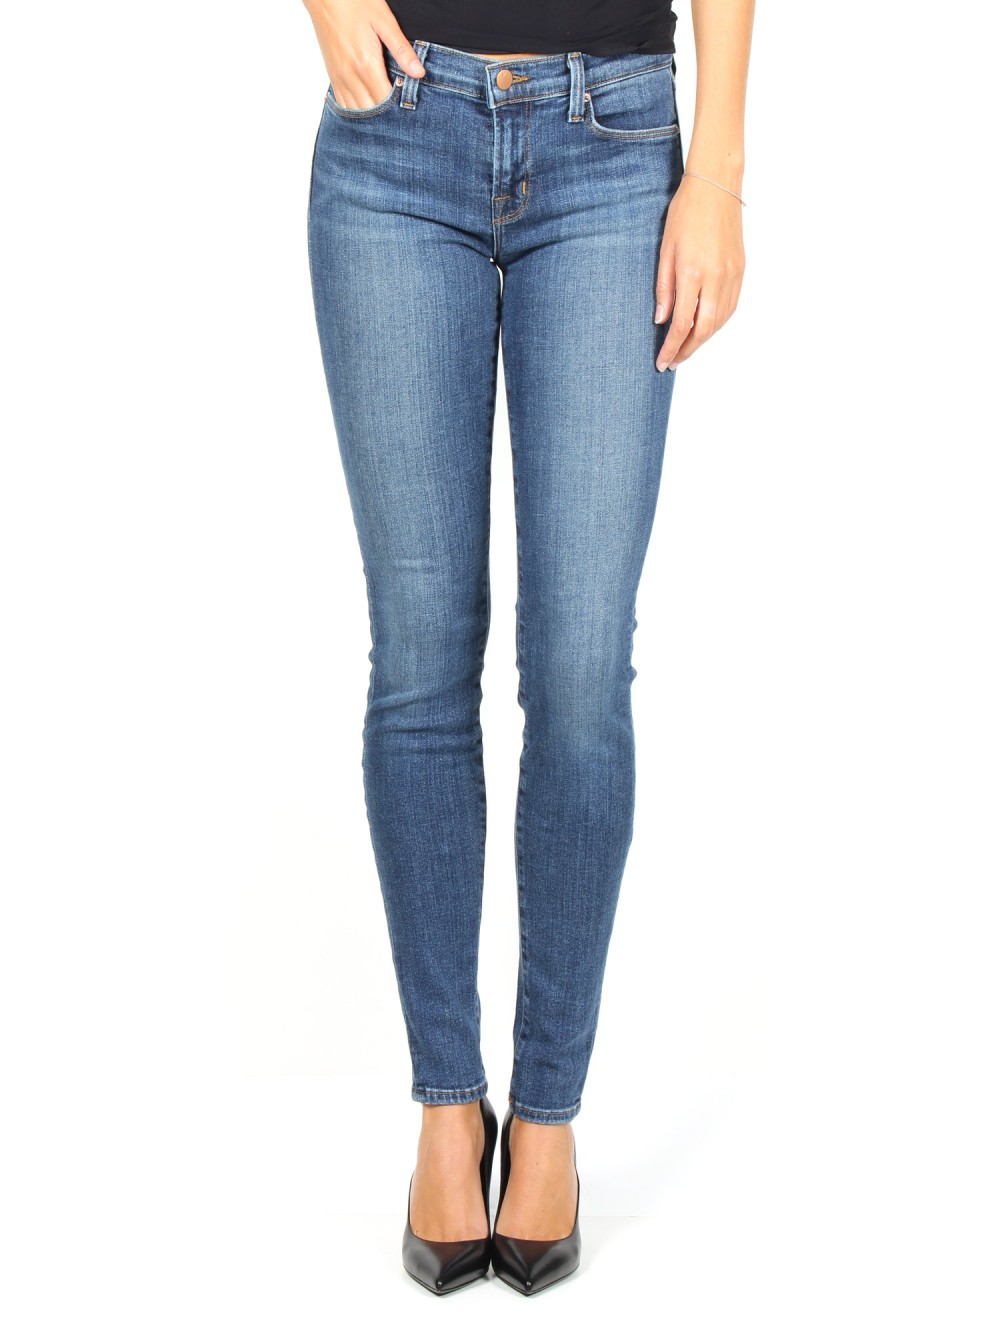 From cropped and embellished to classic and comfortable, find your perfect pair of Sale & Clearance women's skinny jeans at Dillard's.